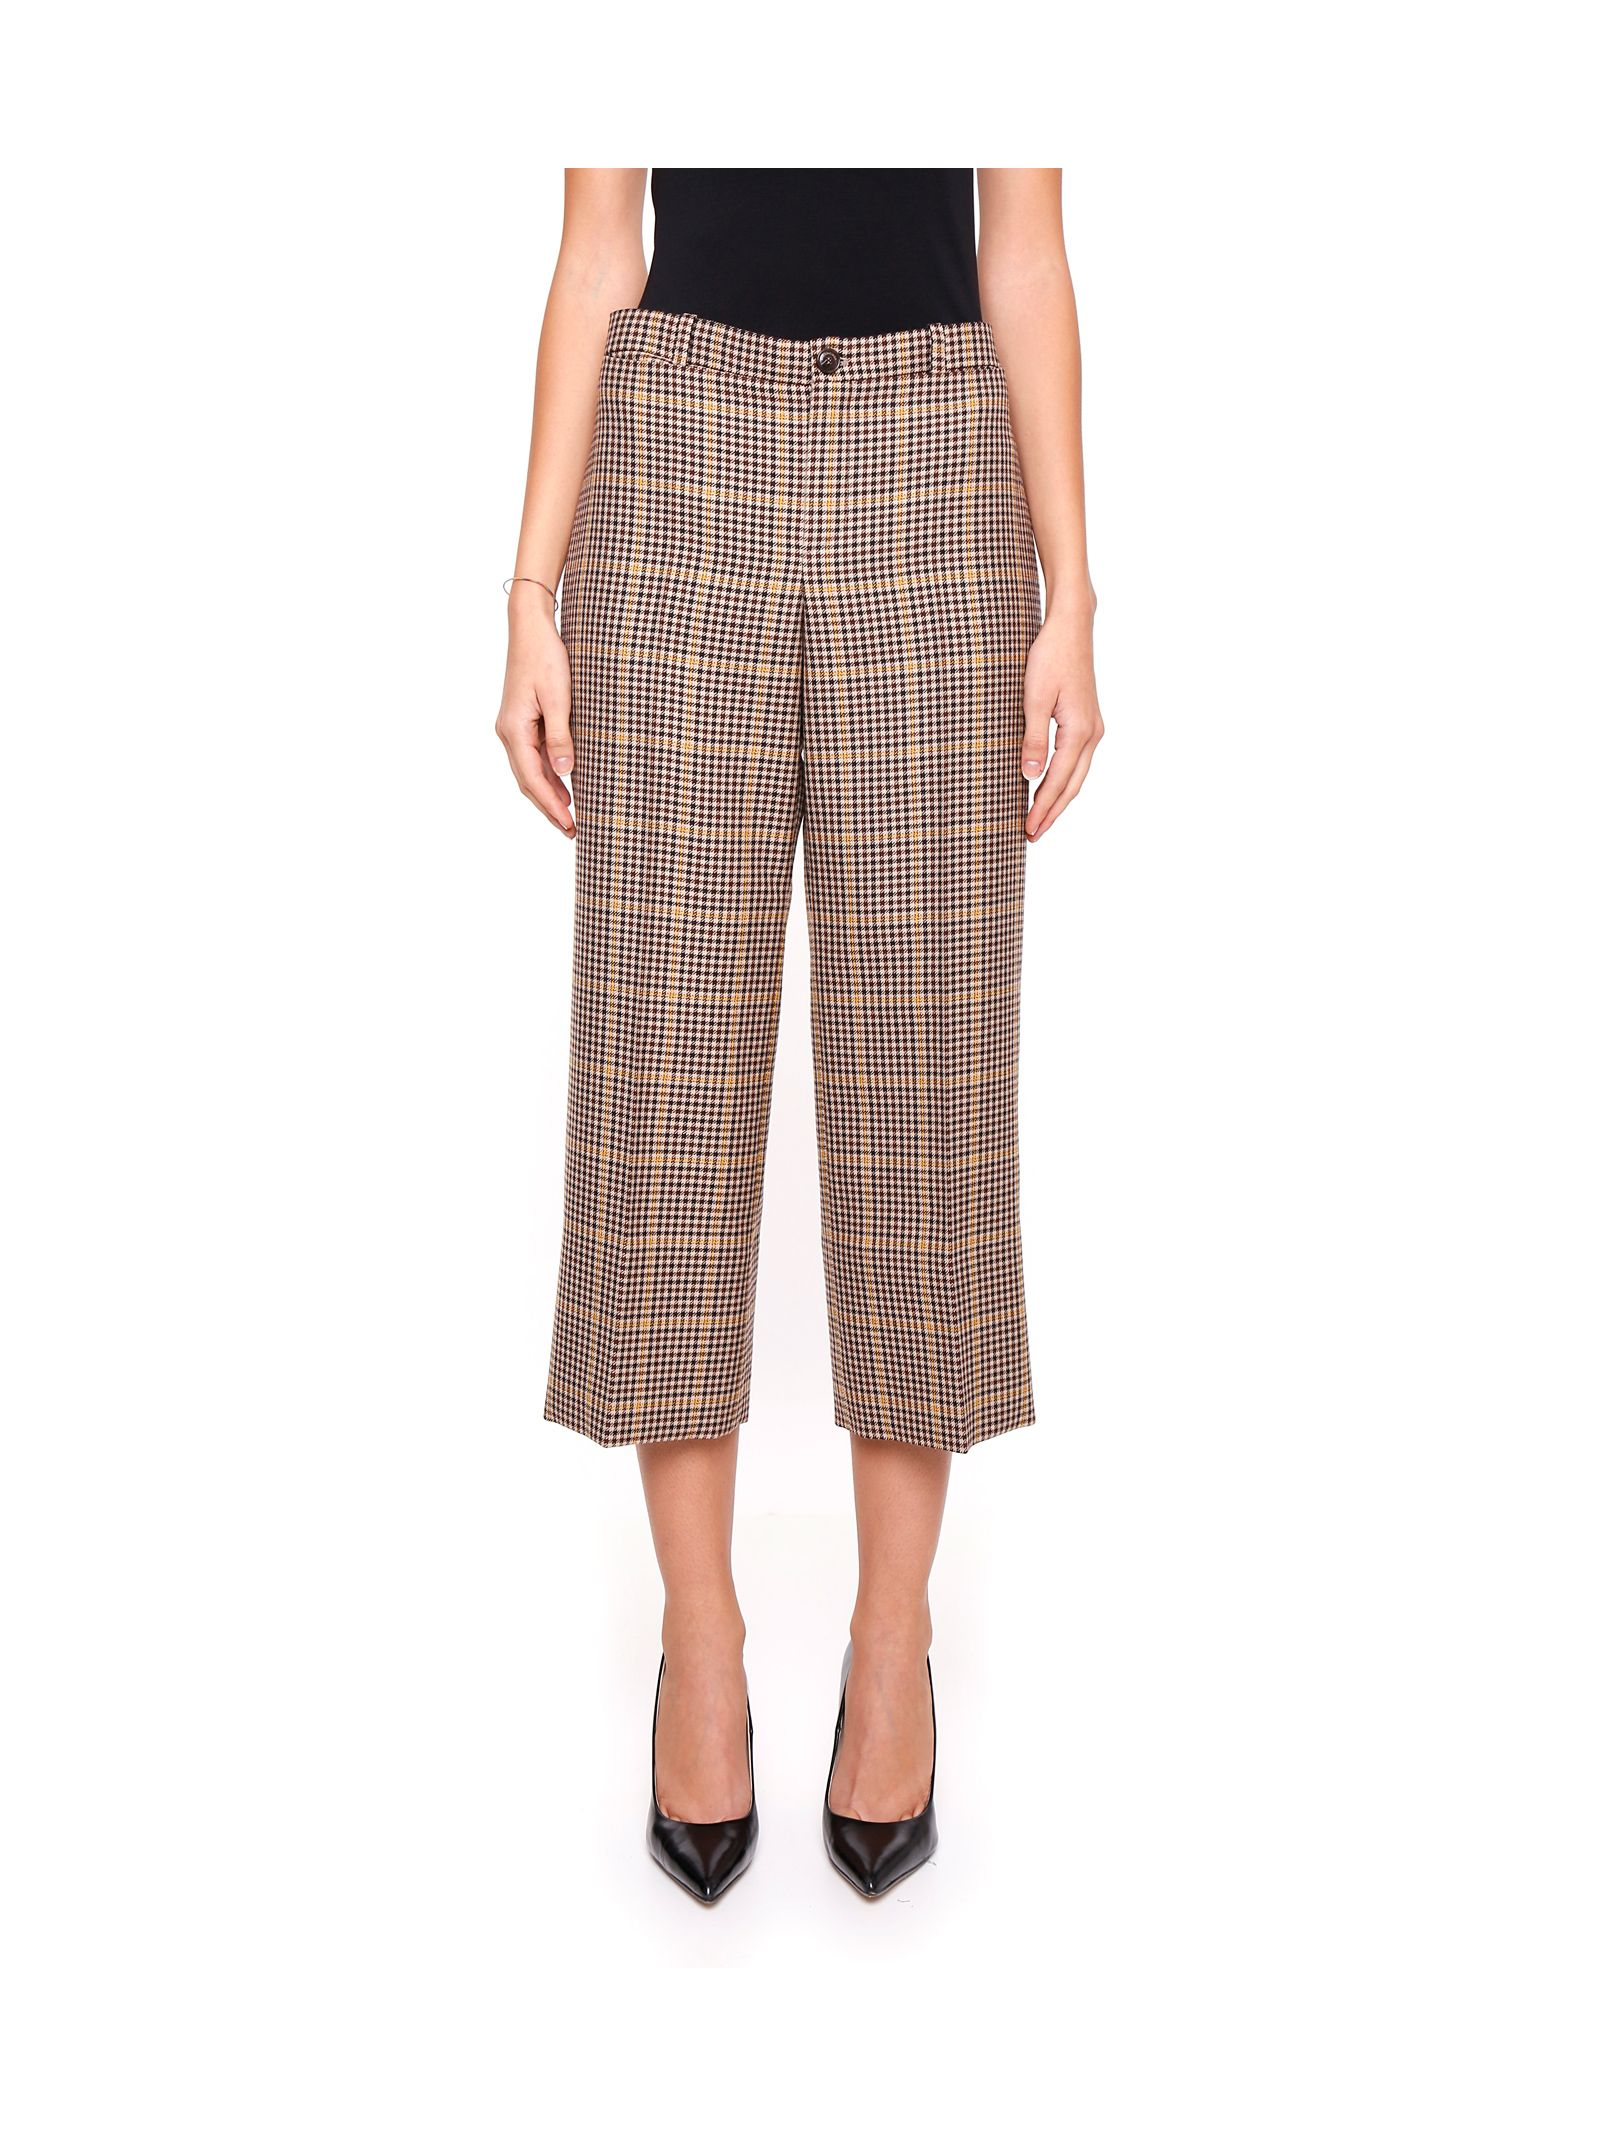 Houndstooth Trousers - Balenciaga - Talent